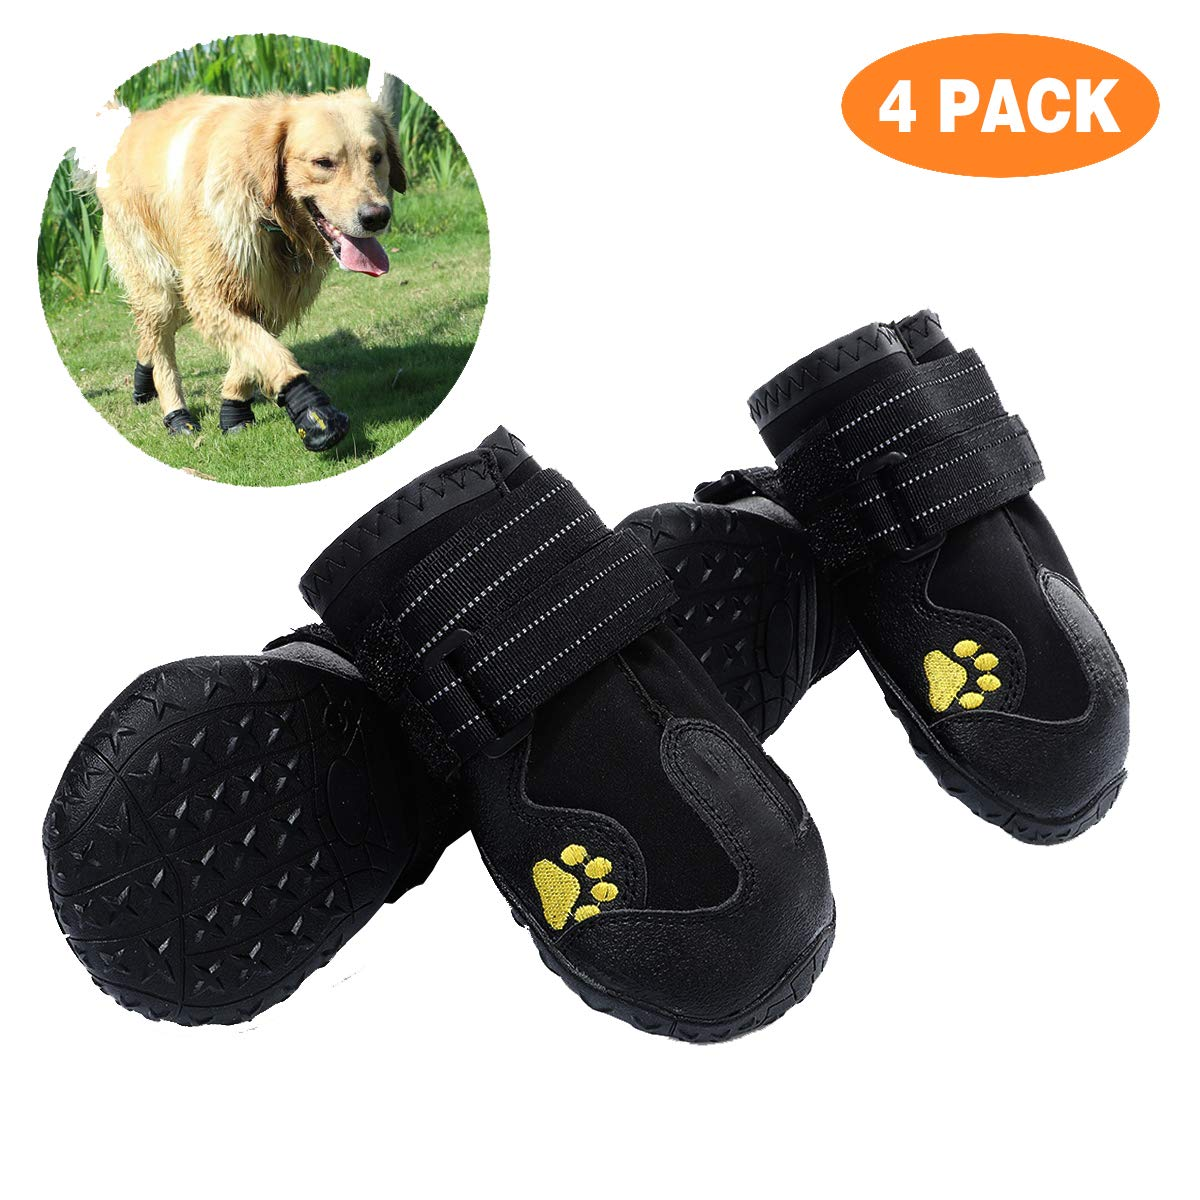 PG.KINWANG Dog Boots Waterproof Dog Shoes for Medium to Large Dogs with Reflective Velcro Rugged Anti-Slip Sole Pet Paw Protectors Labrador Husky Black 4 Pcs (Size 6: 2.9''x2.5'')